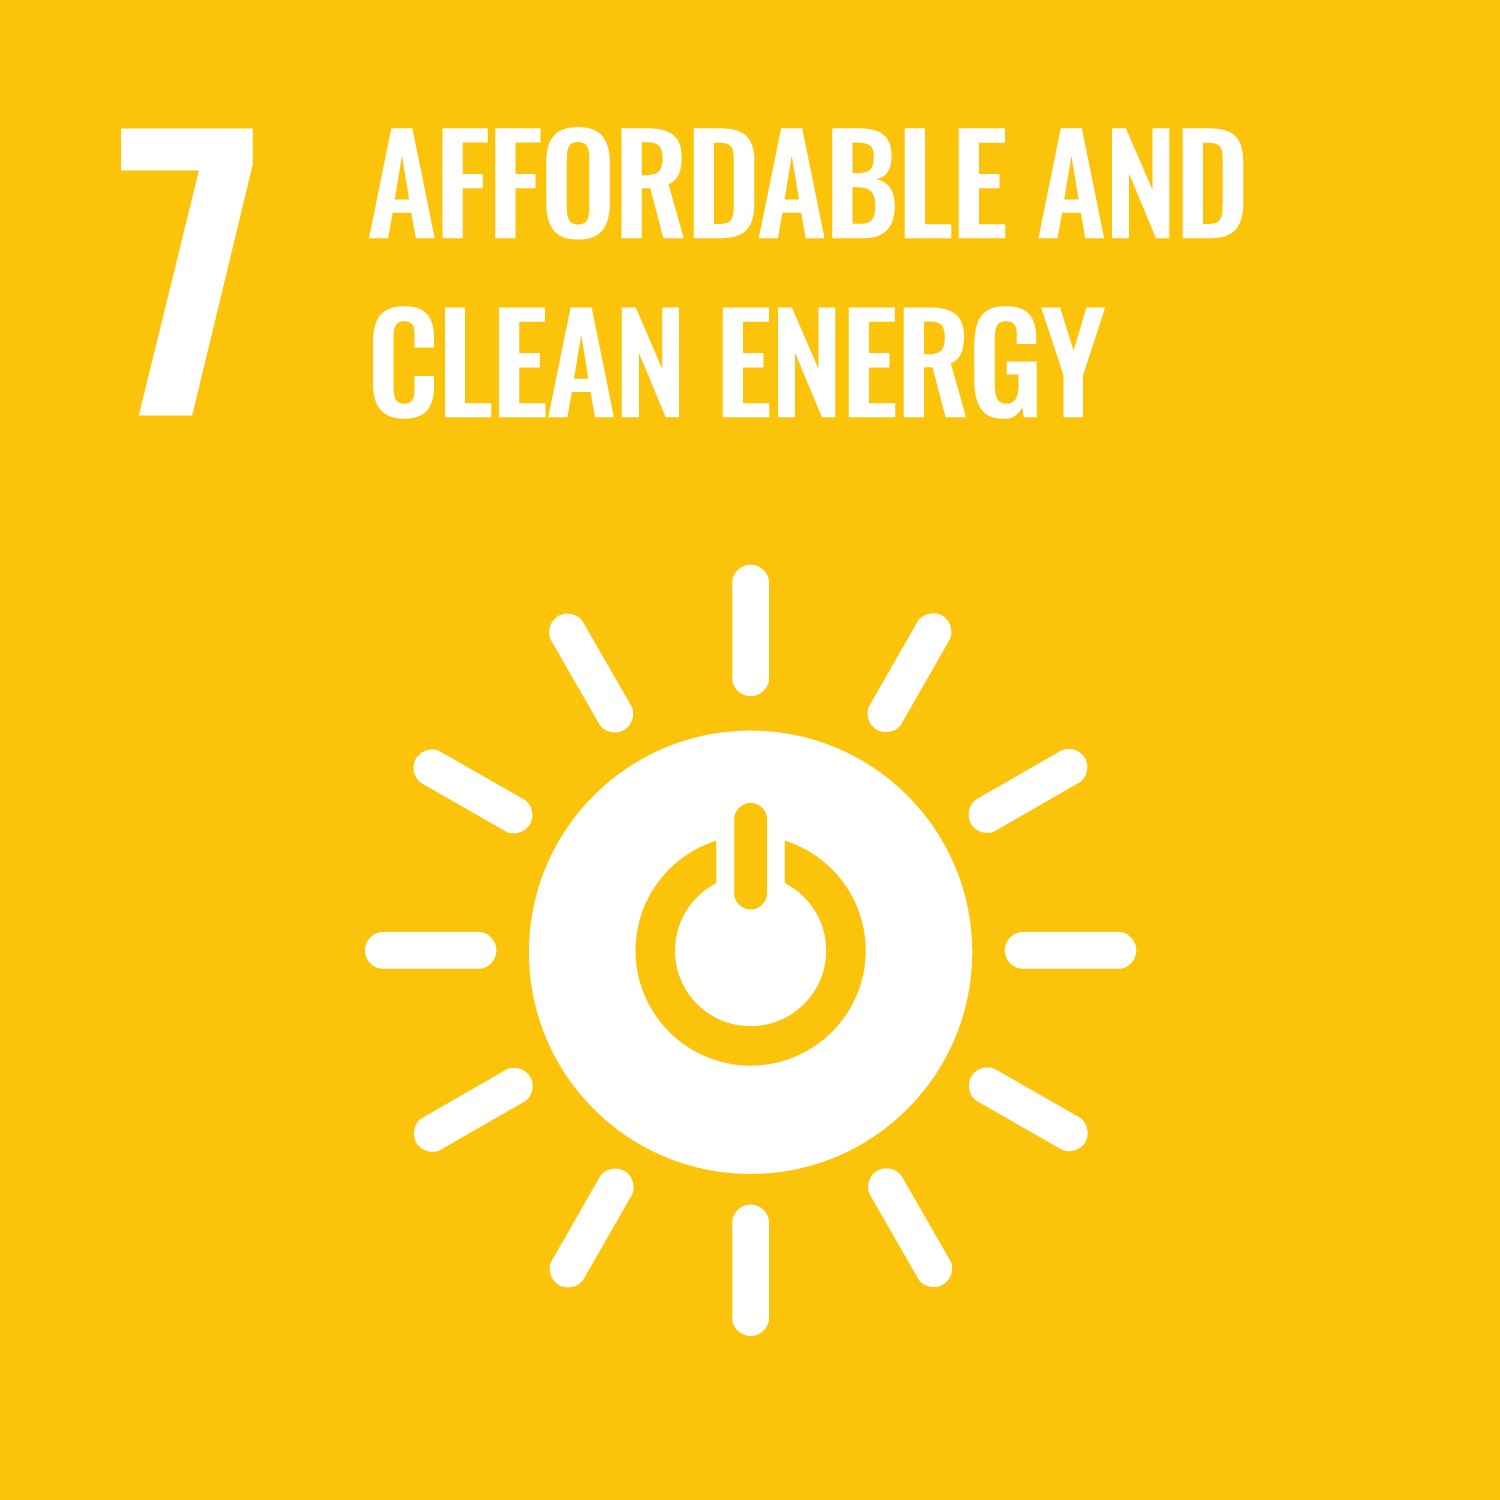 UN Sustainable Development Goal 7: Affordable and Clean Energy